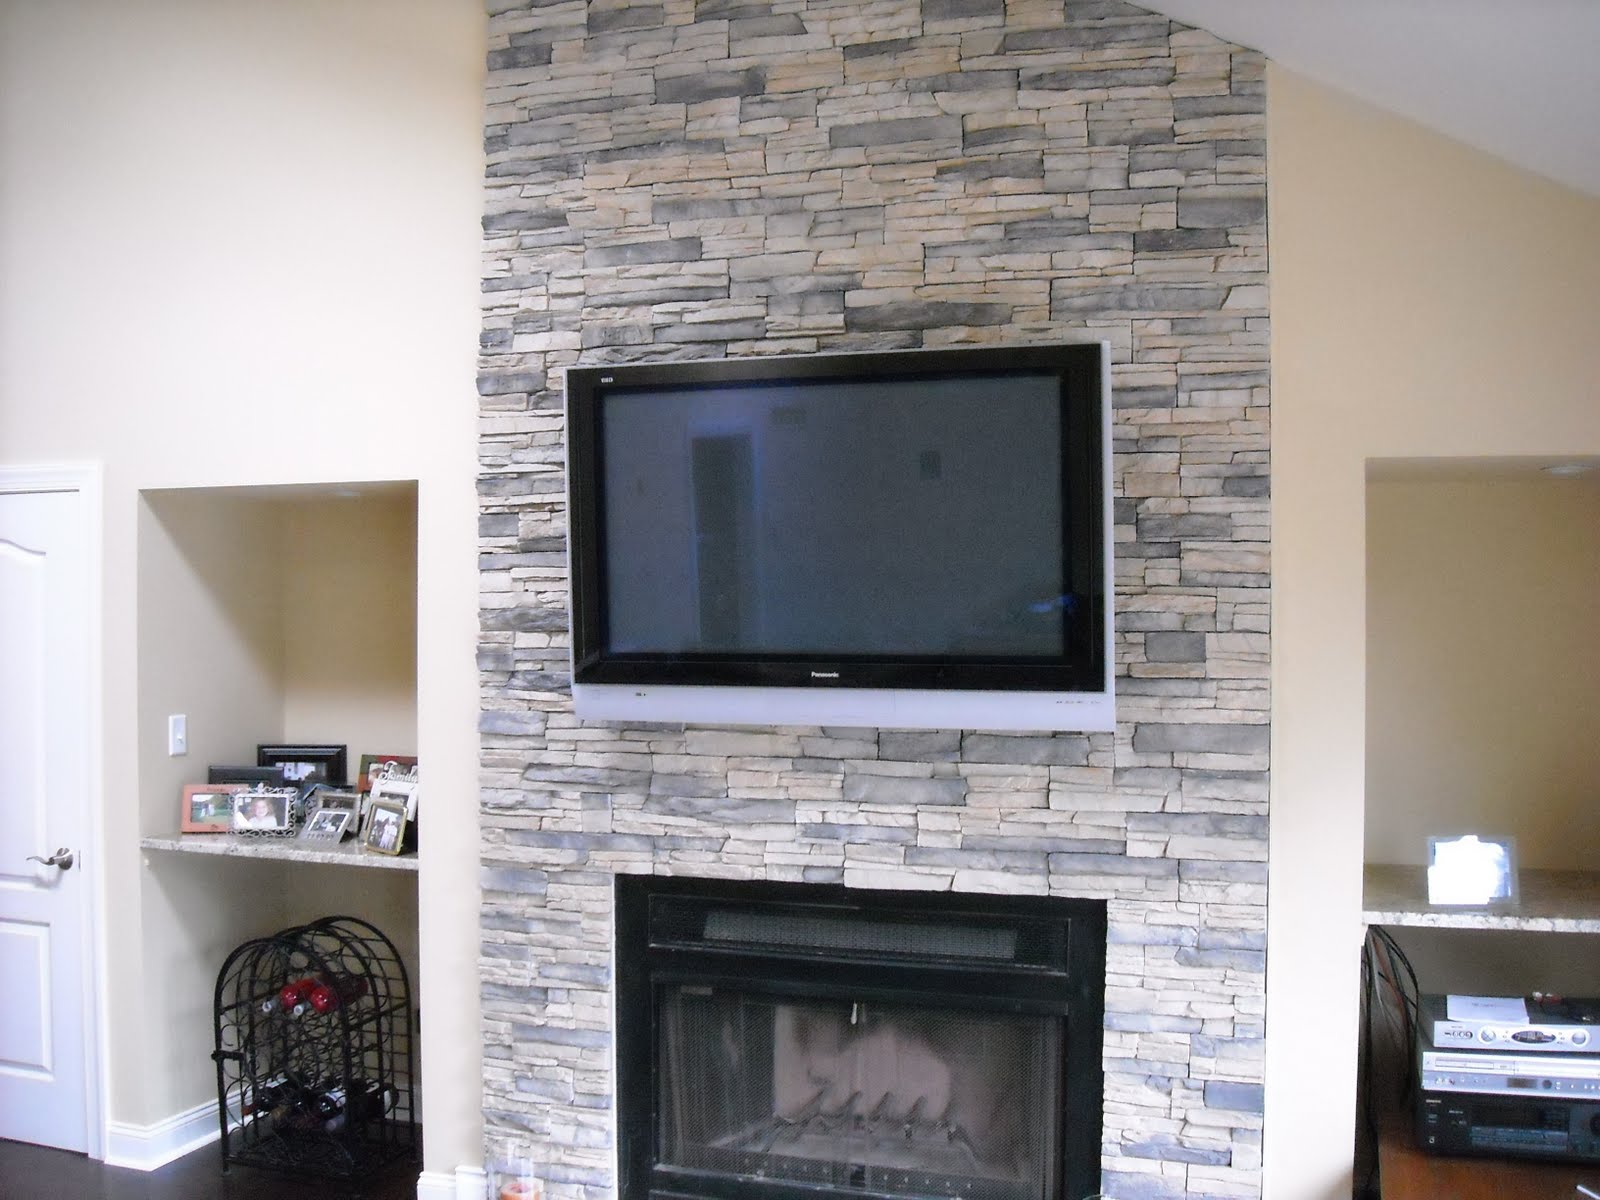 How To Install A Stone Veneer Fireplace Surround Party Invitations Ideas